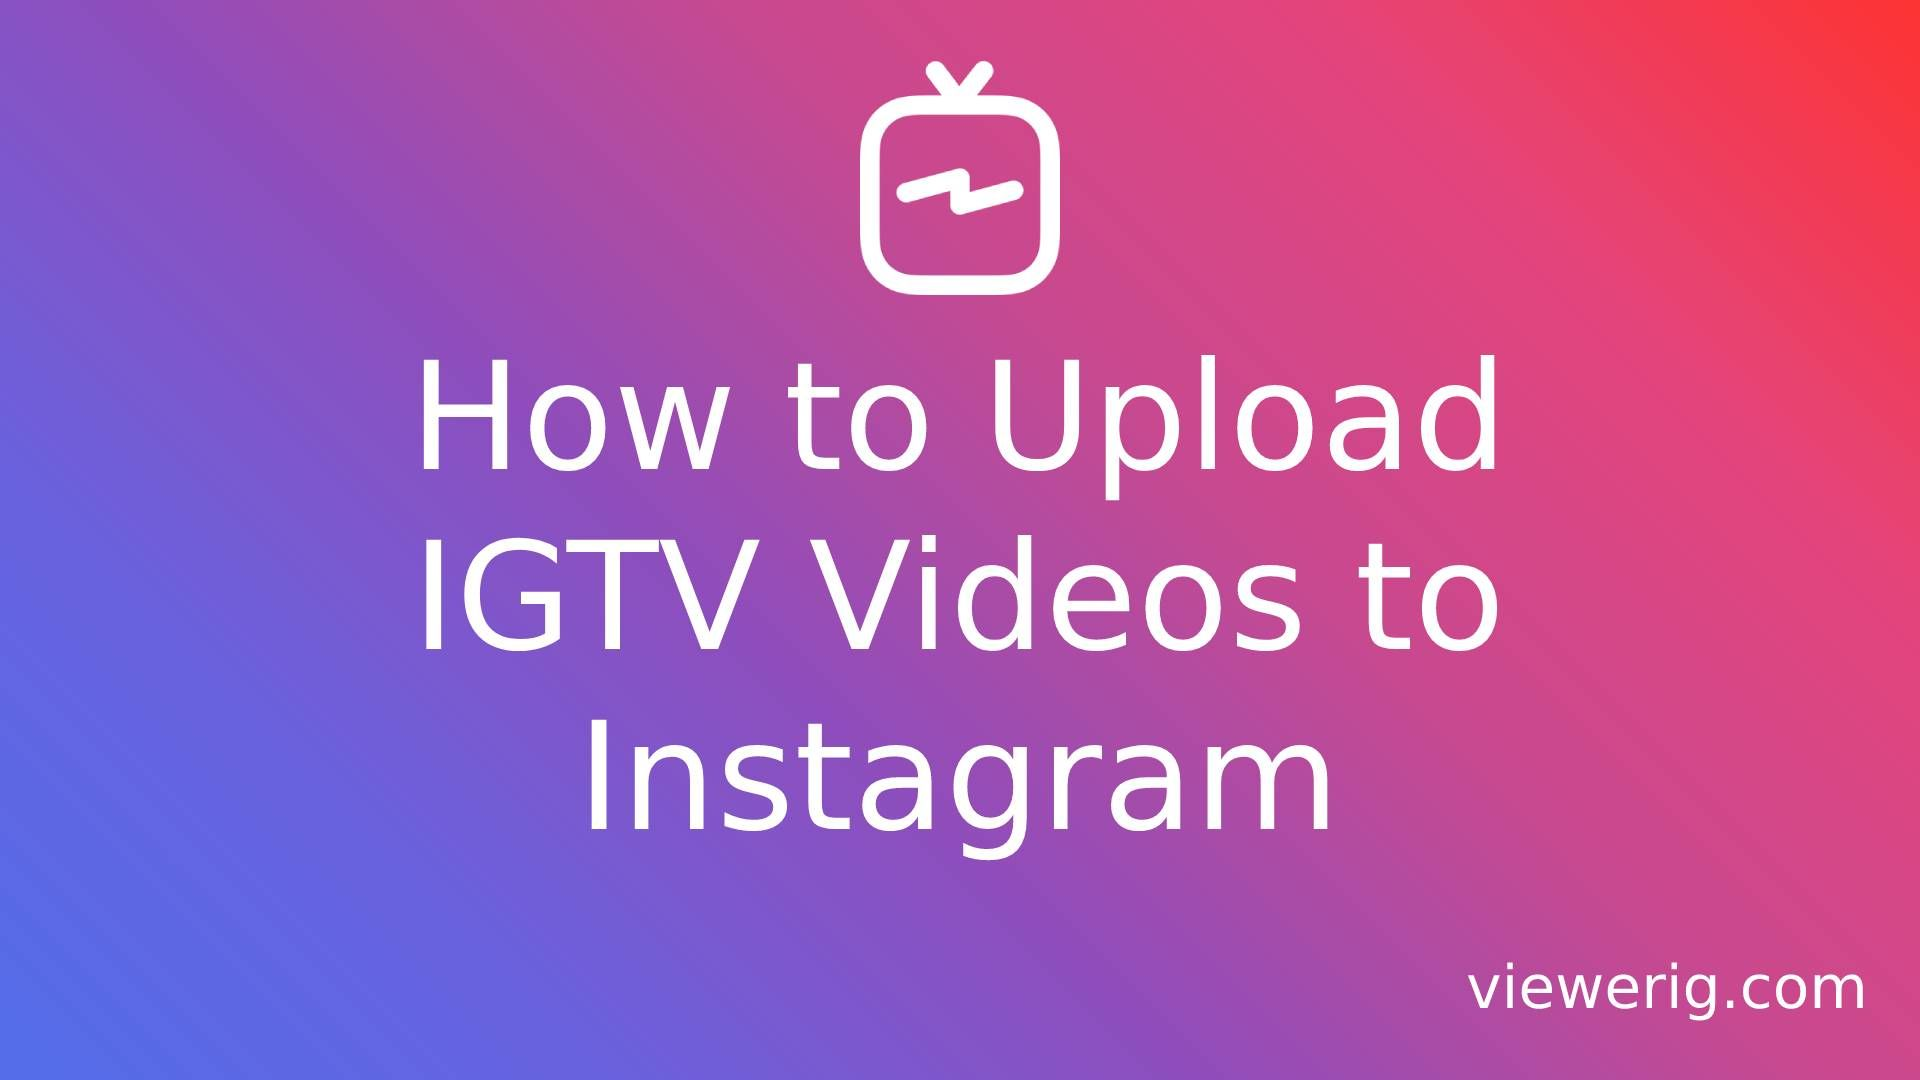 How to Upload IGTV Videos to Instagram?